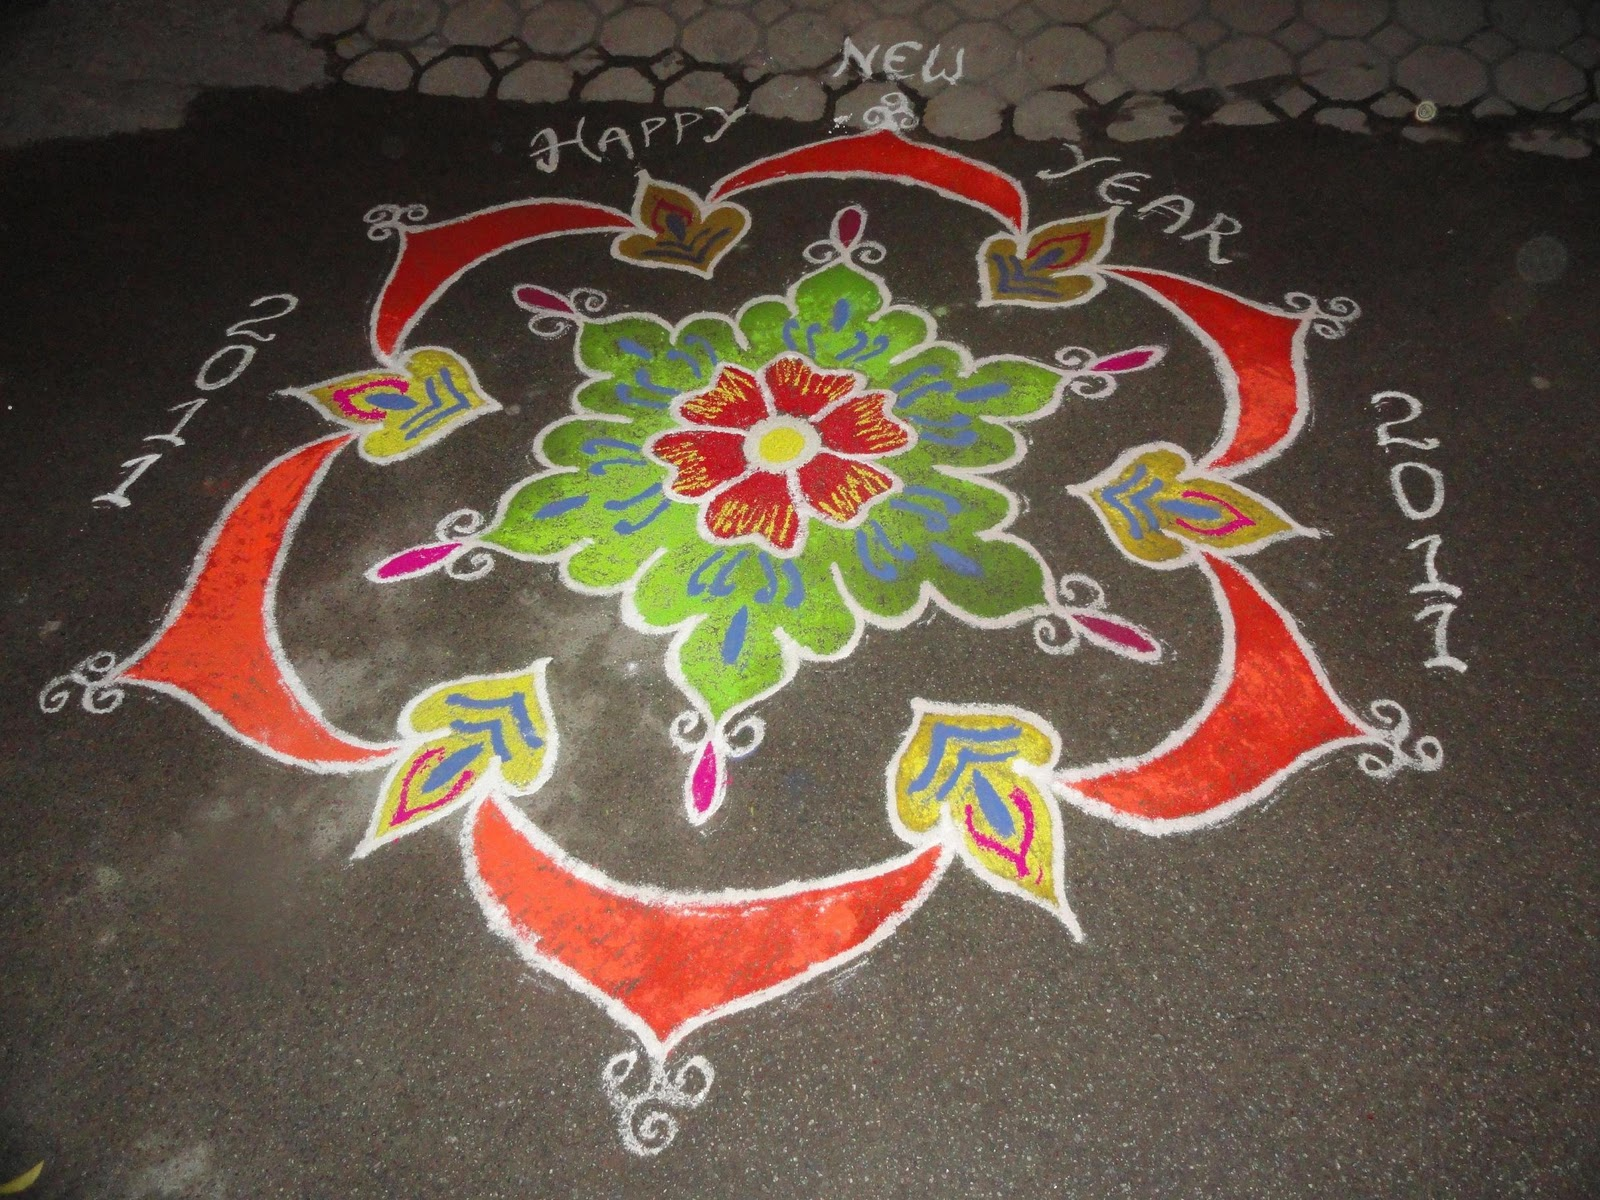 new year cards rangoli important hindu diwali rangoli results cute. 1600 x 1200.Happy New Year Rangoli Designs